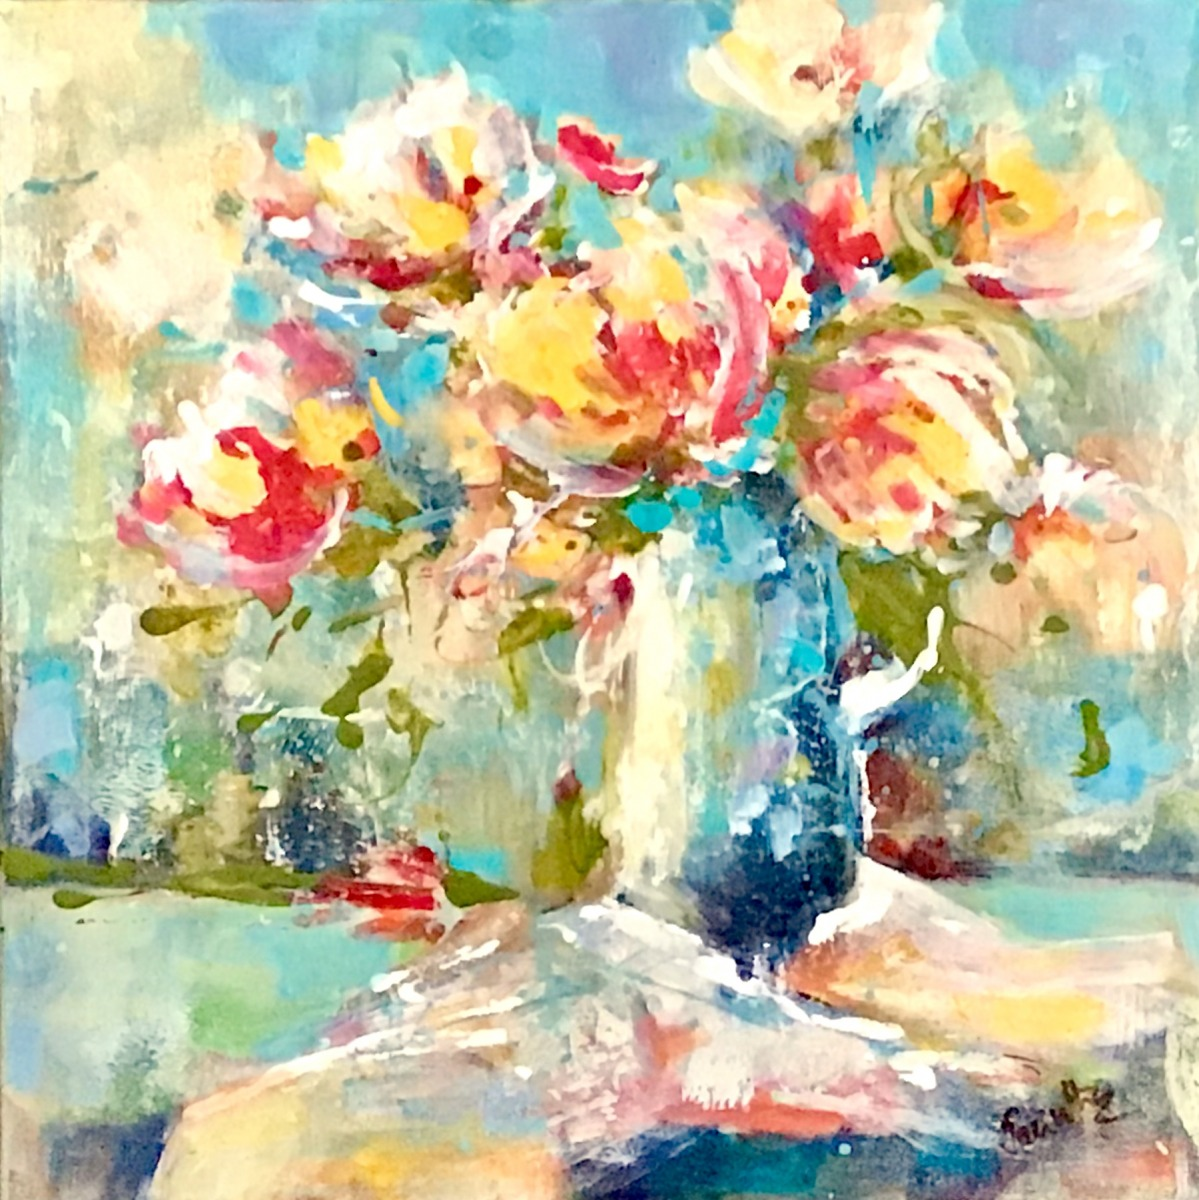 SOLD - IN A BLUE VASE